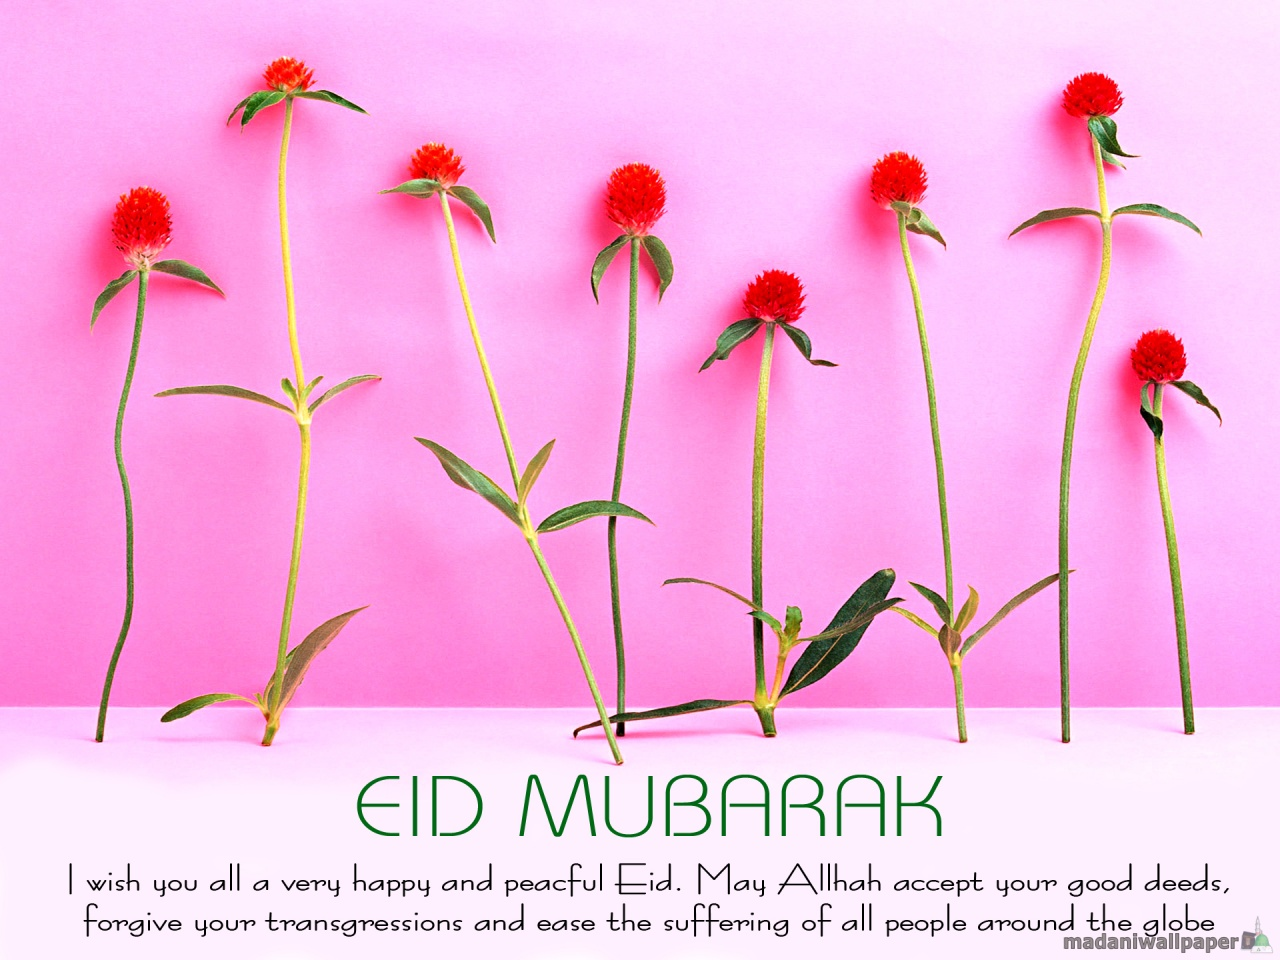 new_hd_eid_mubarak_wallpaper_2013-1280x960